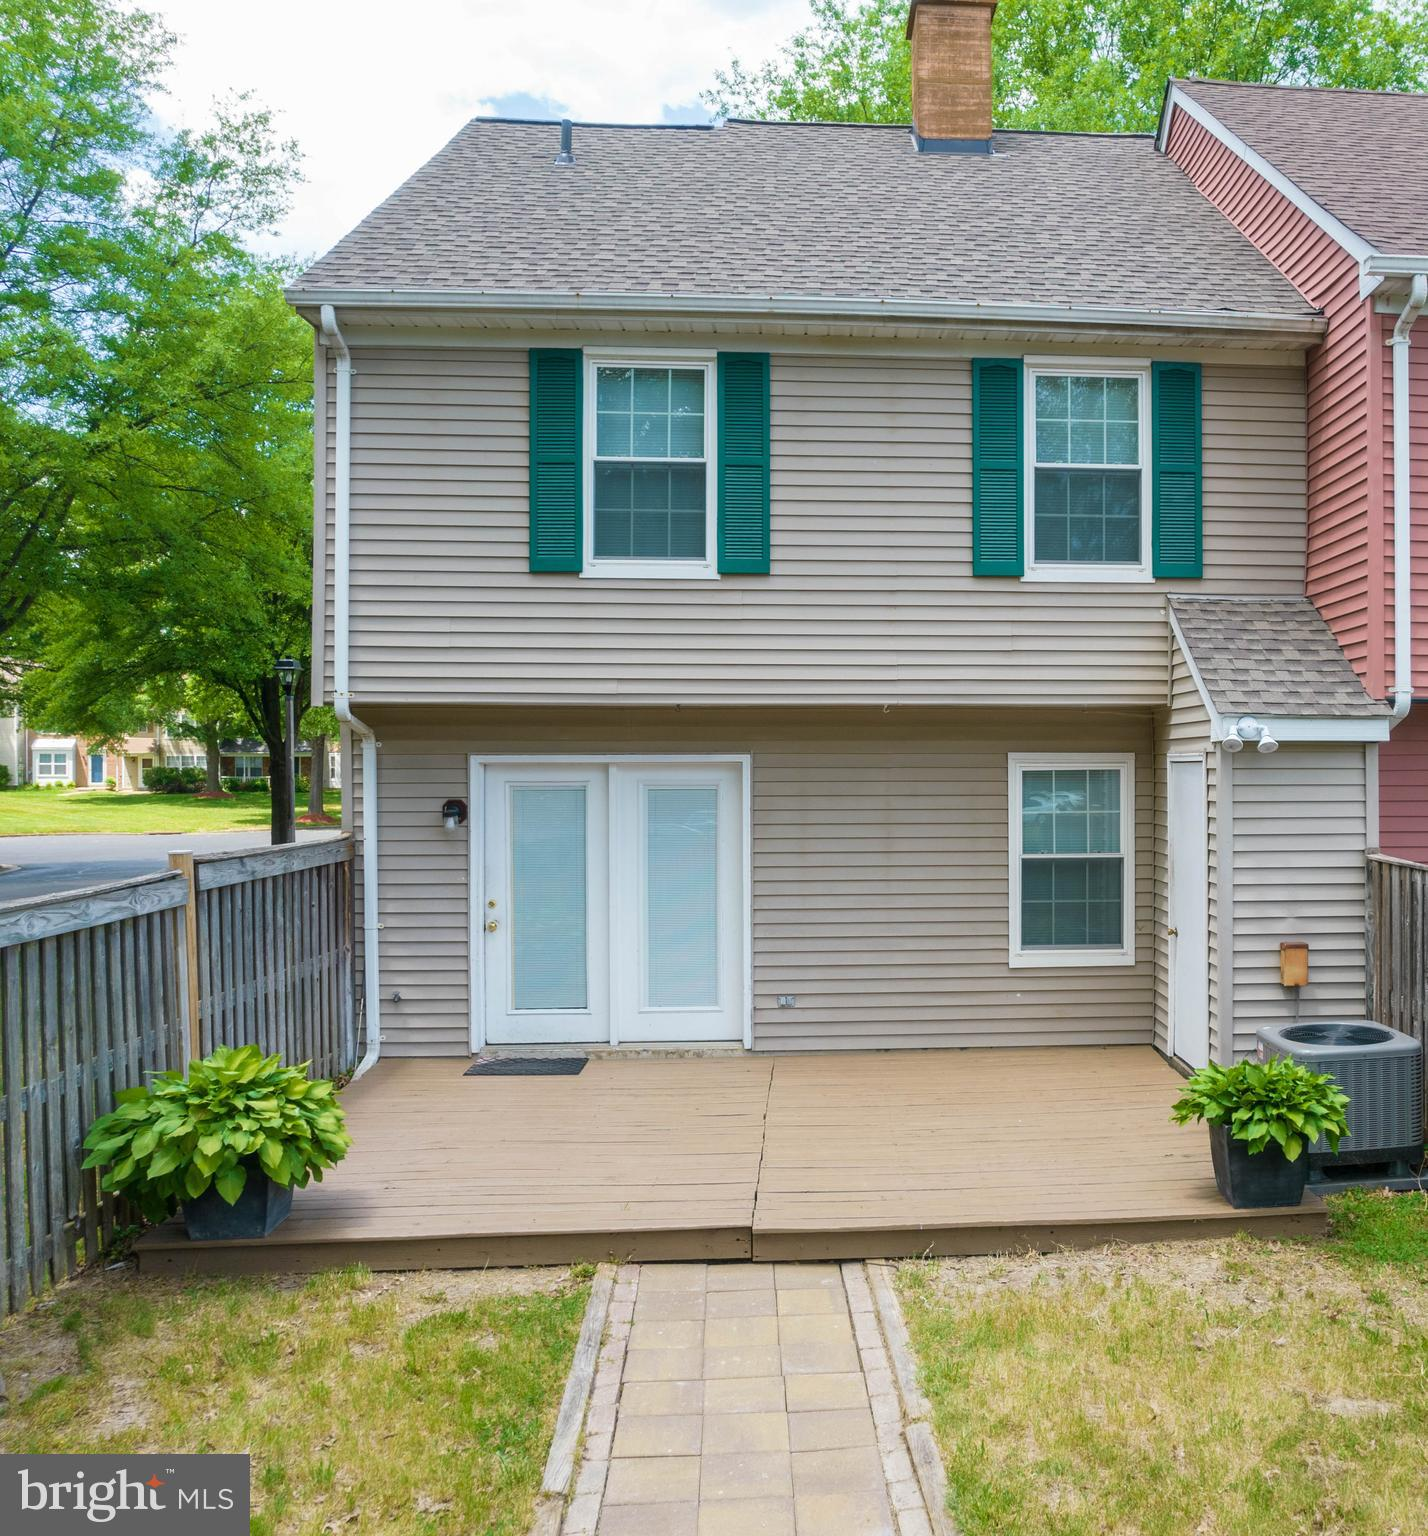 A Must See!! This well maintained 2 level End Unit Town Home  features Hard Wood Floors, Roof and HVAC less than a year old , Upgraded Windows, Ceiling Fans in all the rooms, Freshly Painted.  Close to Shopping and Restaurants. This property has 2 HOA'S. 1 Annually for 329 the 2nd for 70.17 monthly.